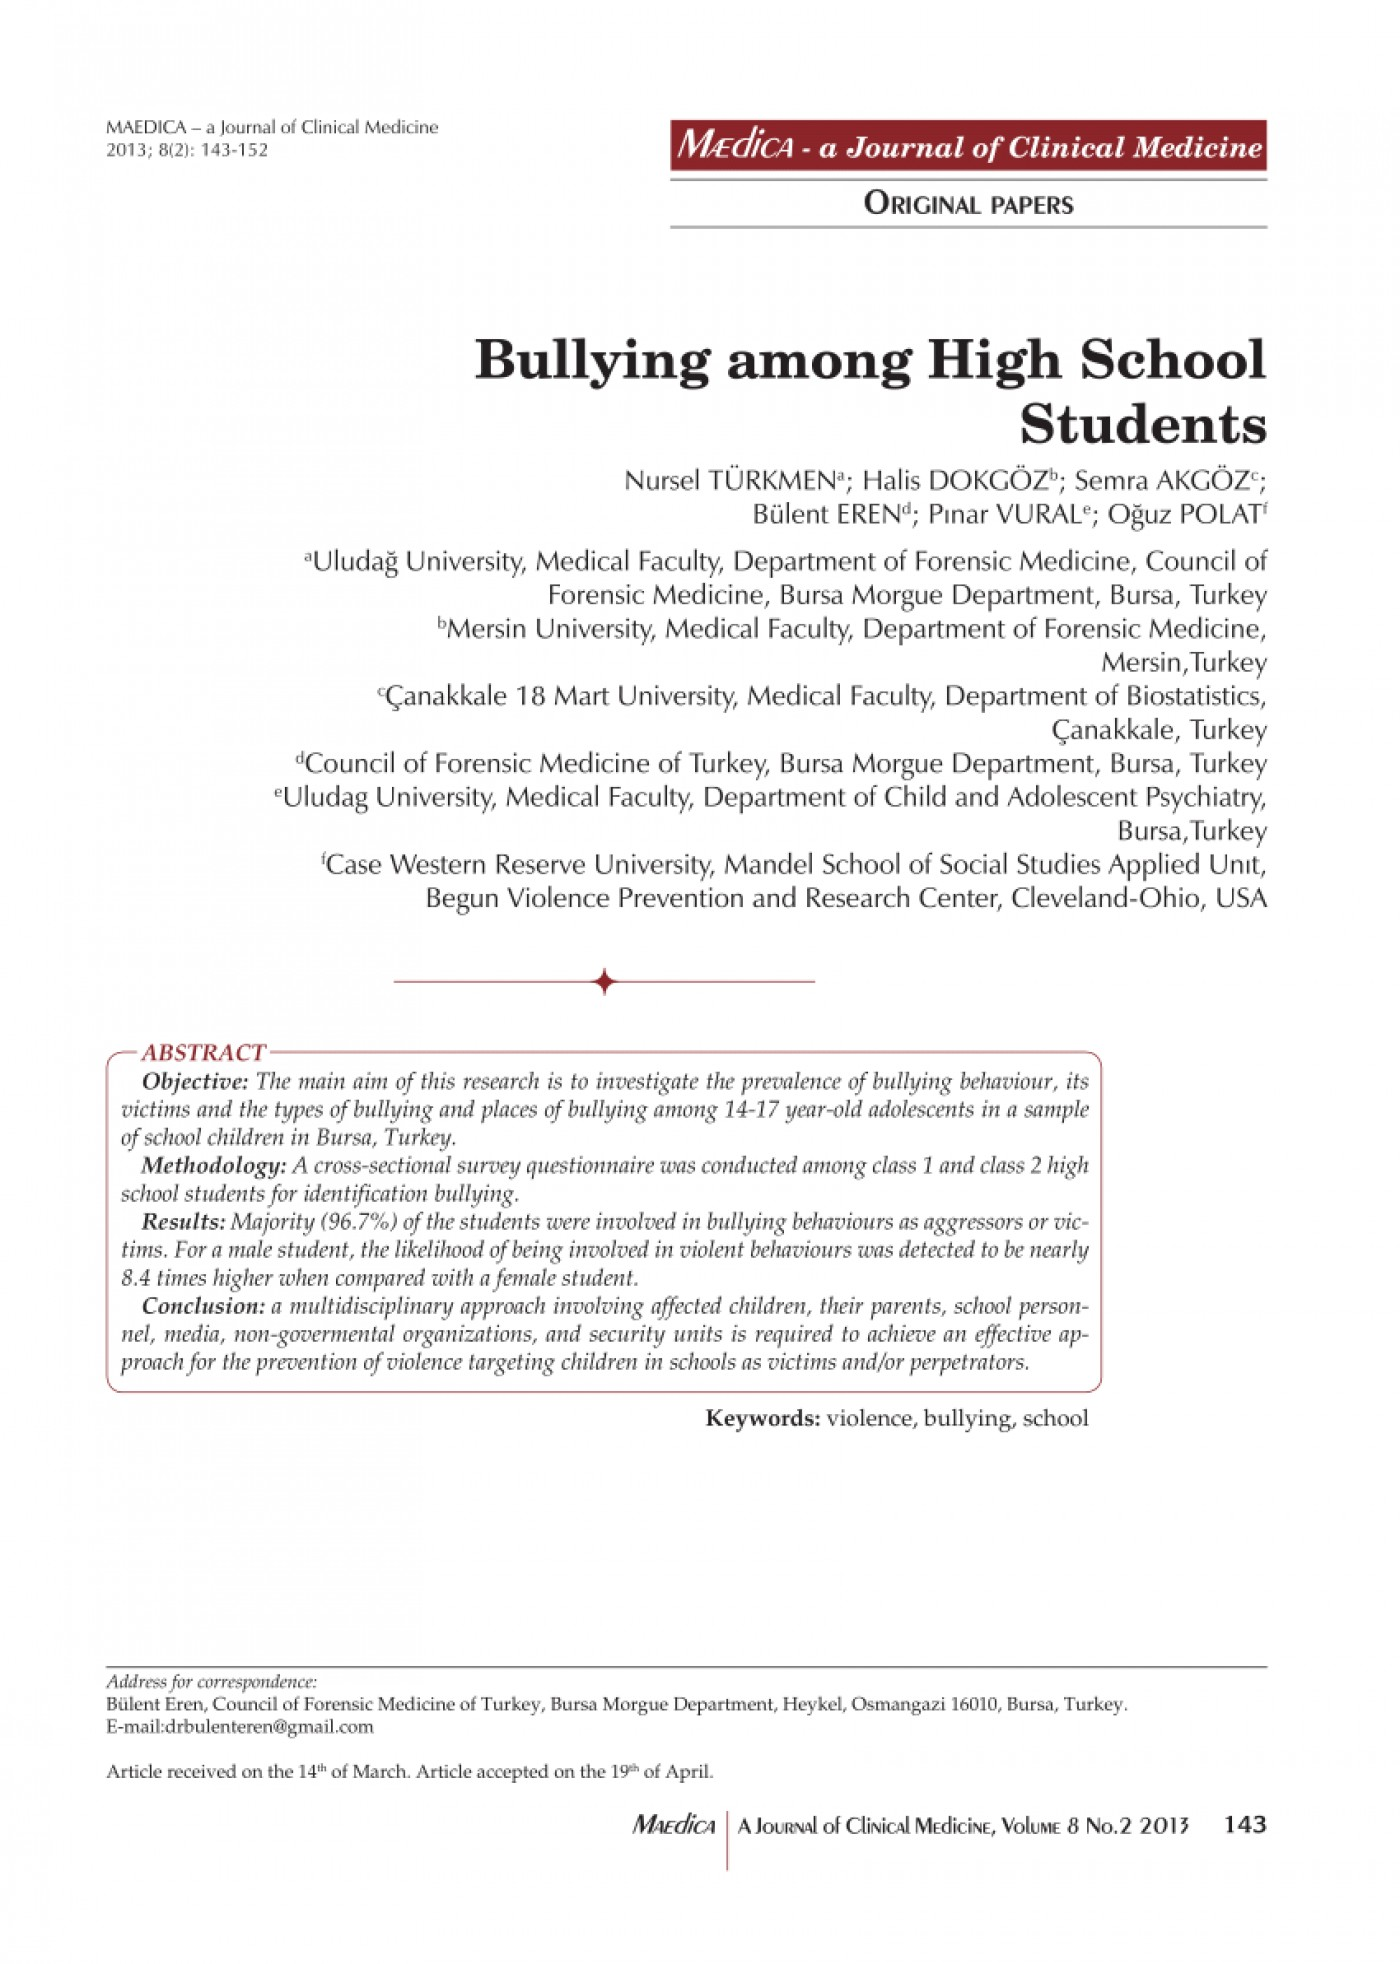 001 Largepreview Bullying Research Paper Imposing Pdf Short About Quantitative Effects Of 1400